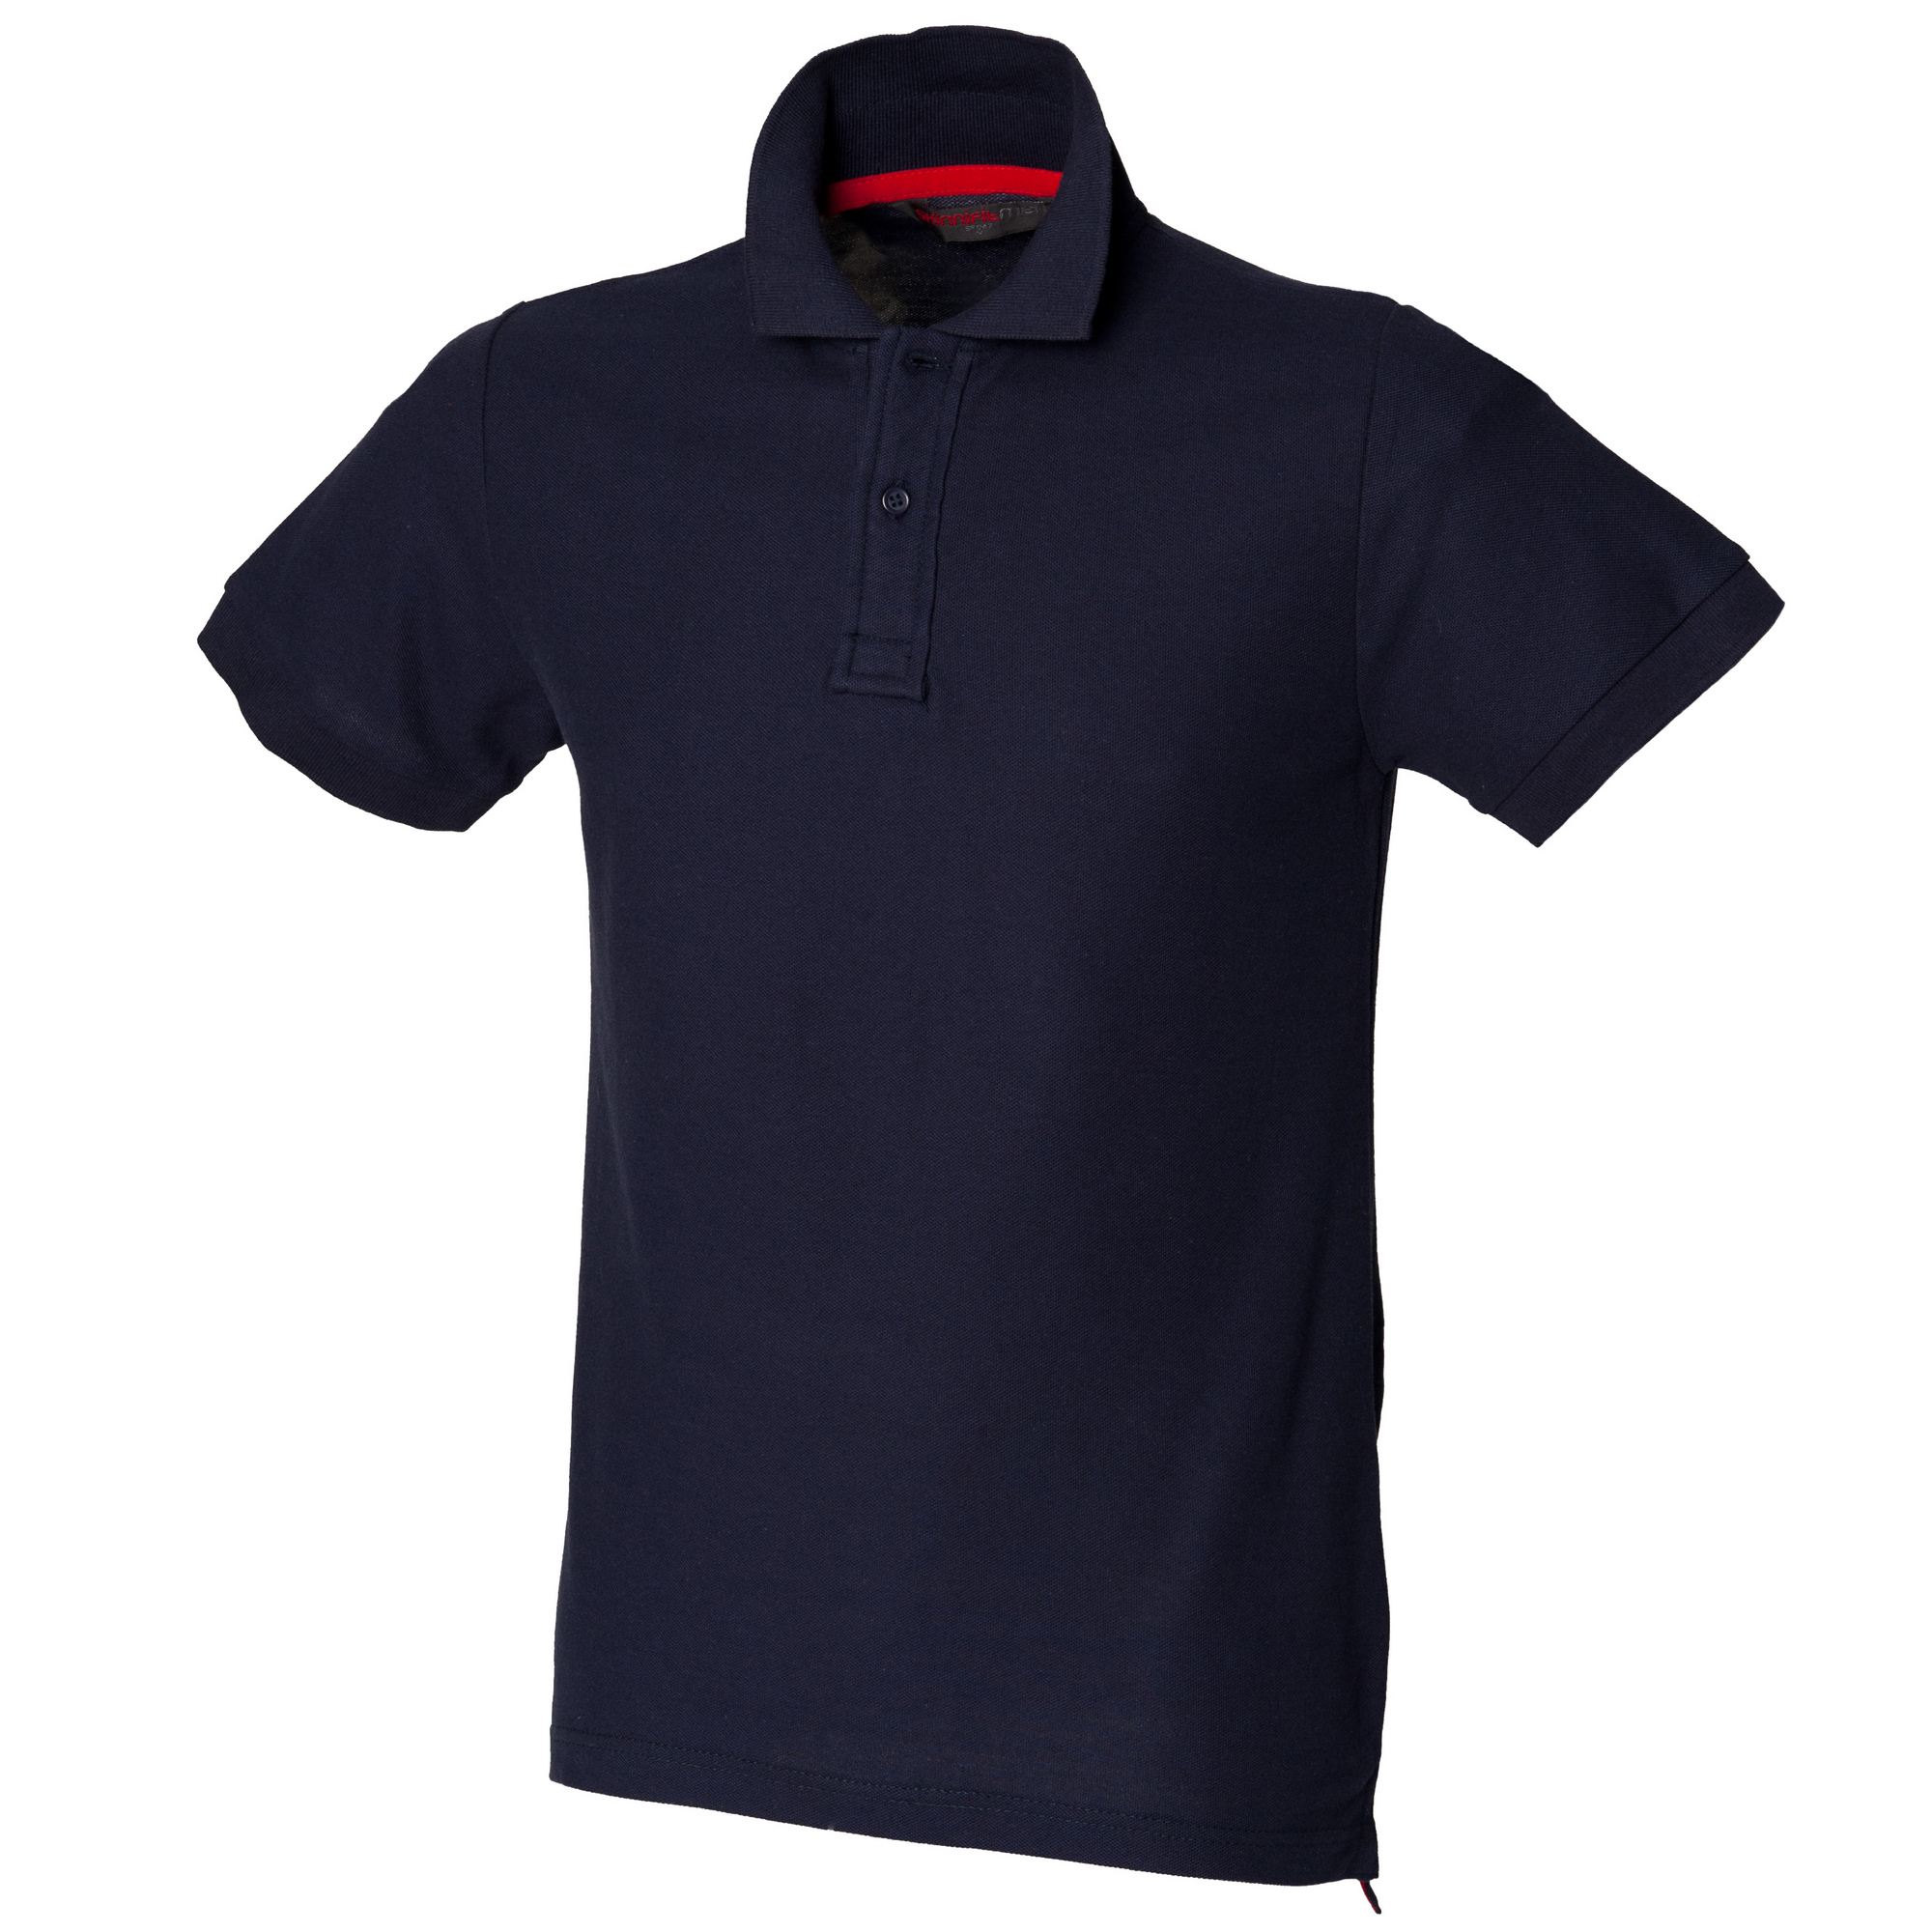 with Stay-up Collar RW1400 Skinni Fit Mens Club Polo Shirt